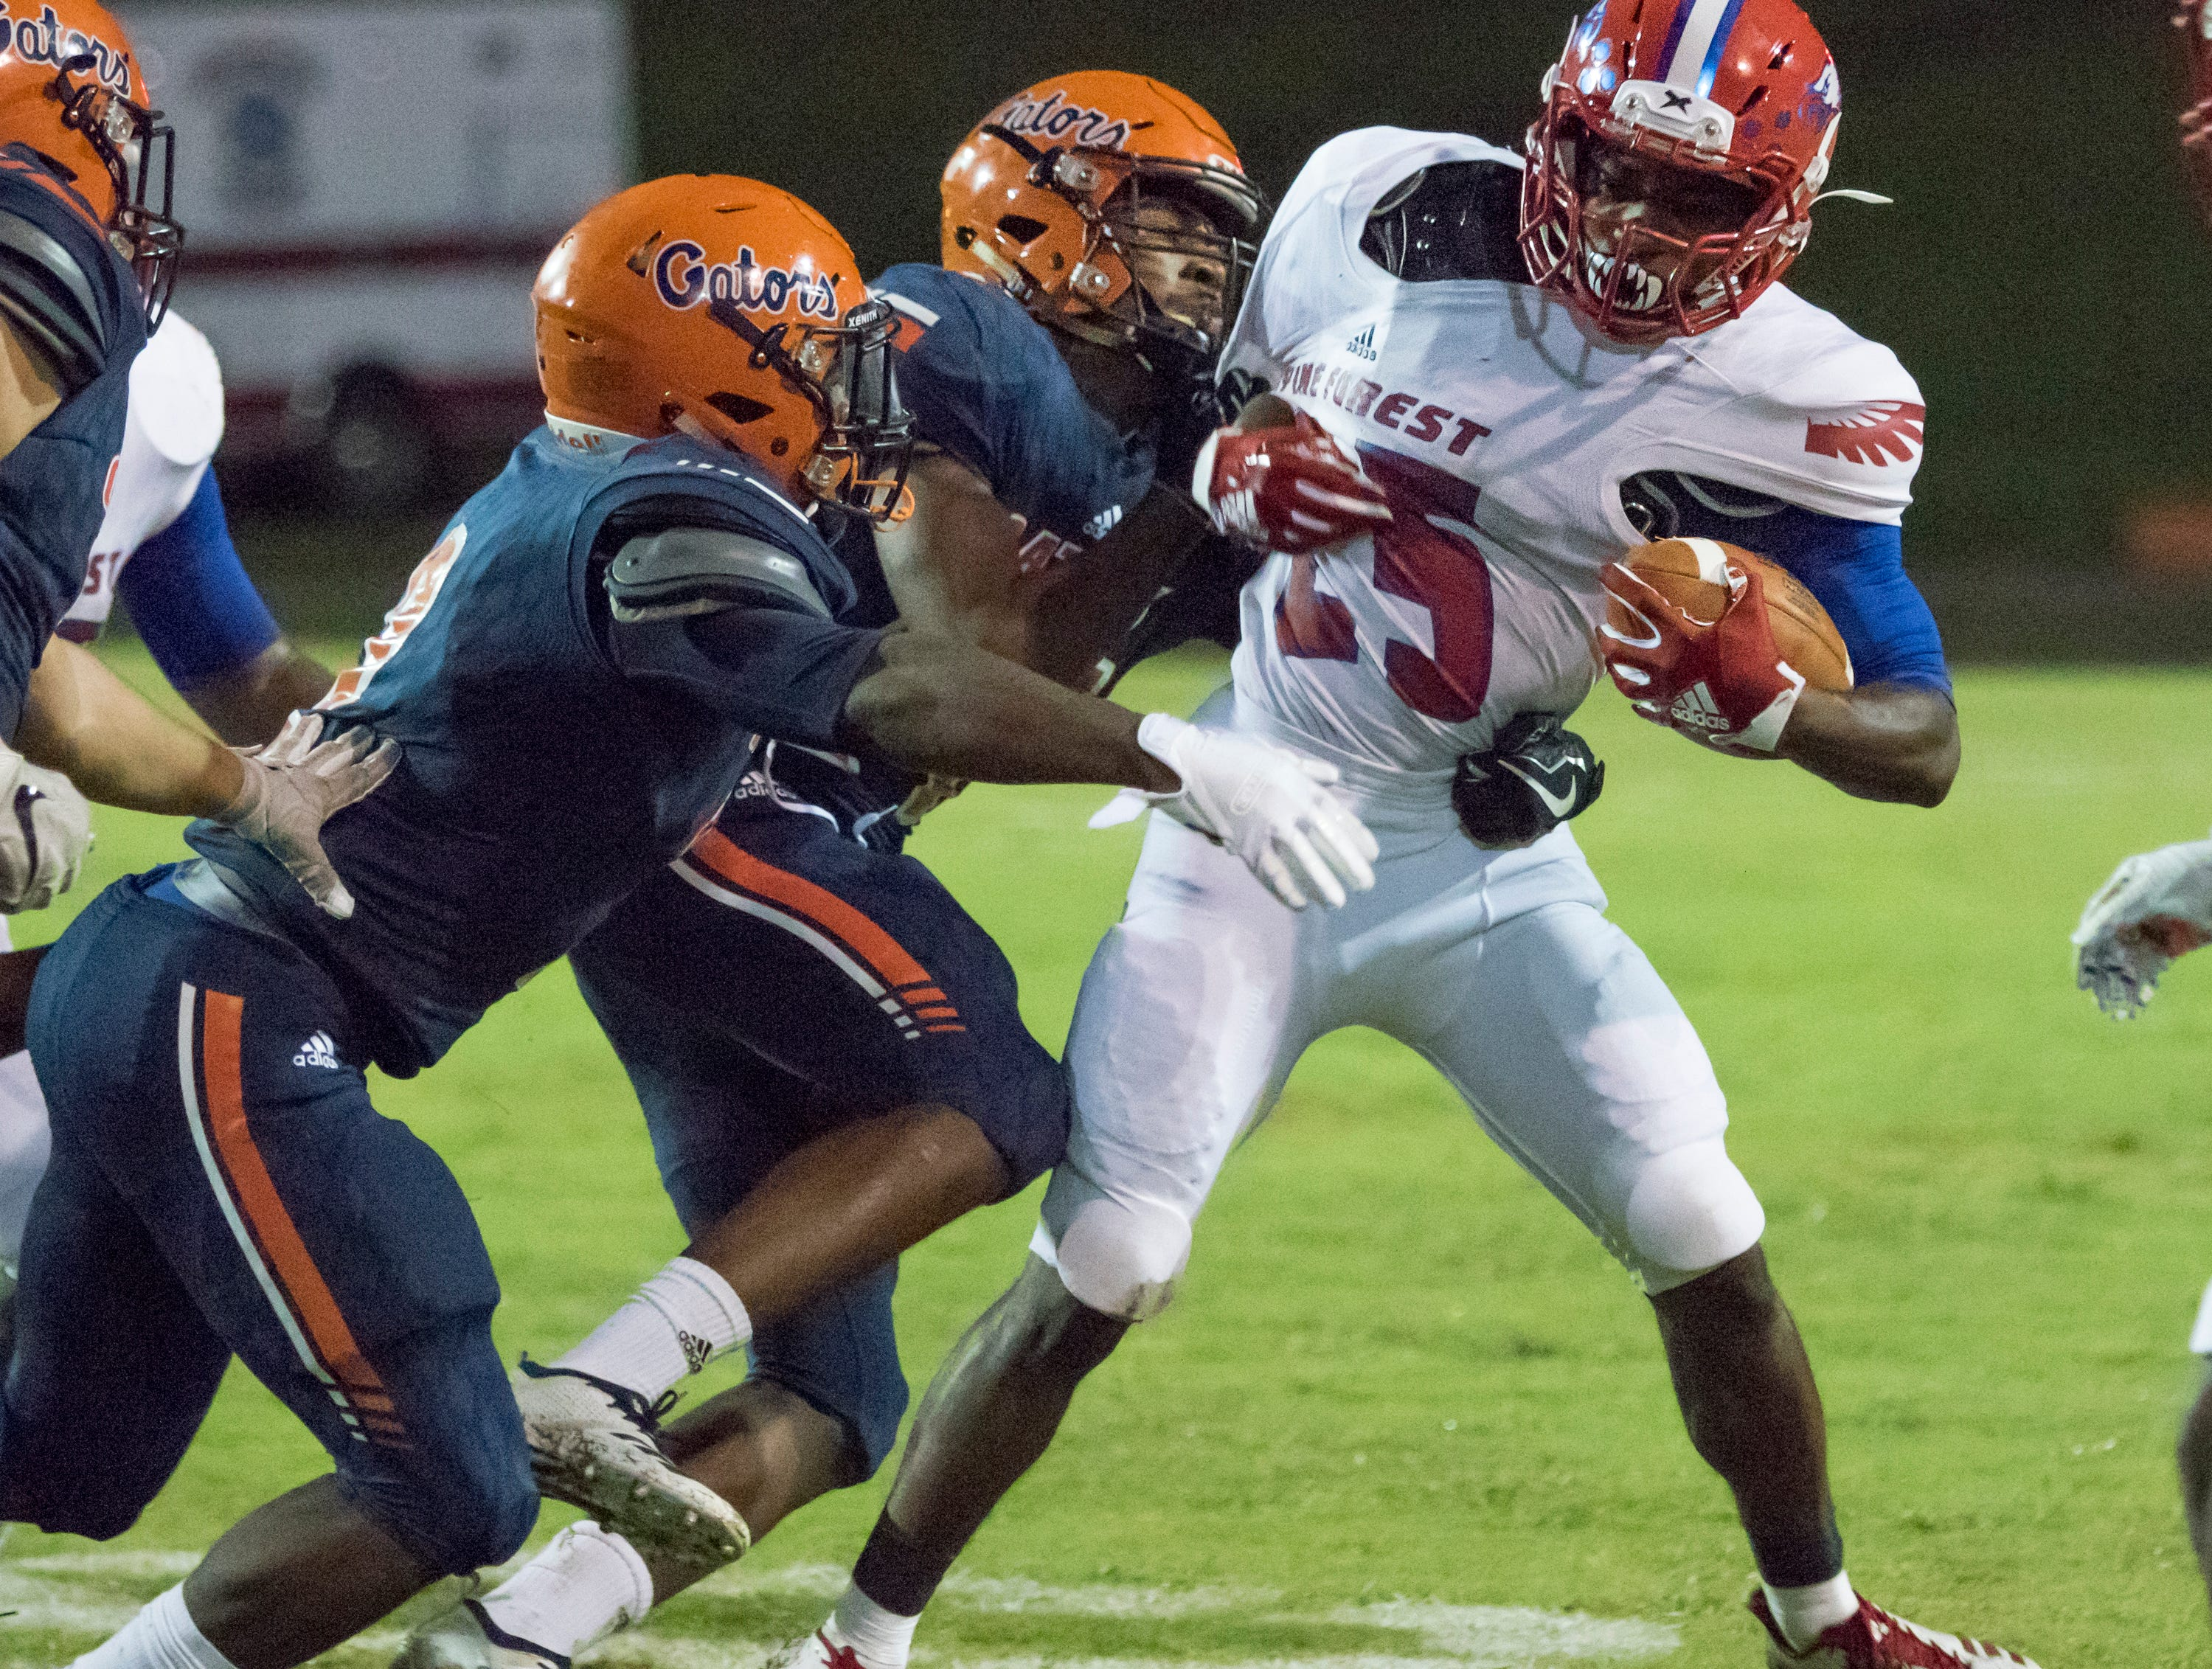 Anwar Lewis (25) gets wrapped up during the Pine Forest vs Escambia football game at Escambia High School in Pensacola on Friday, September 28, 2018.